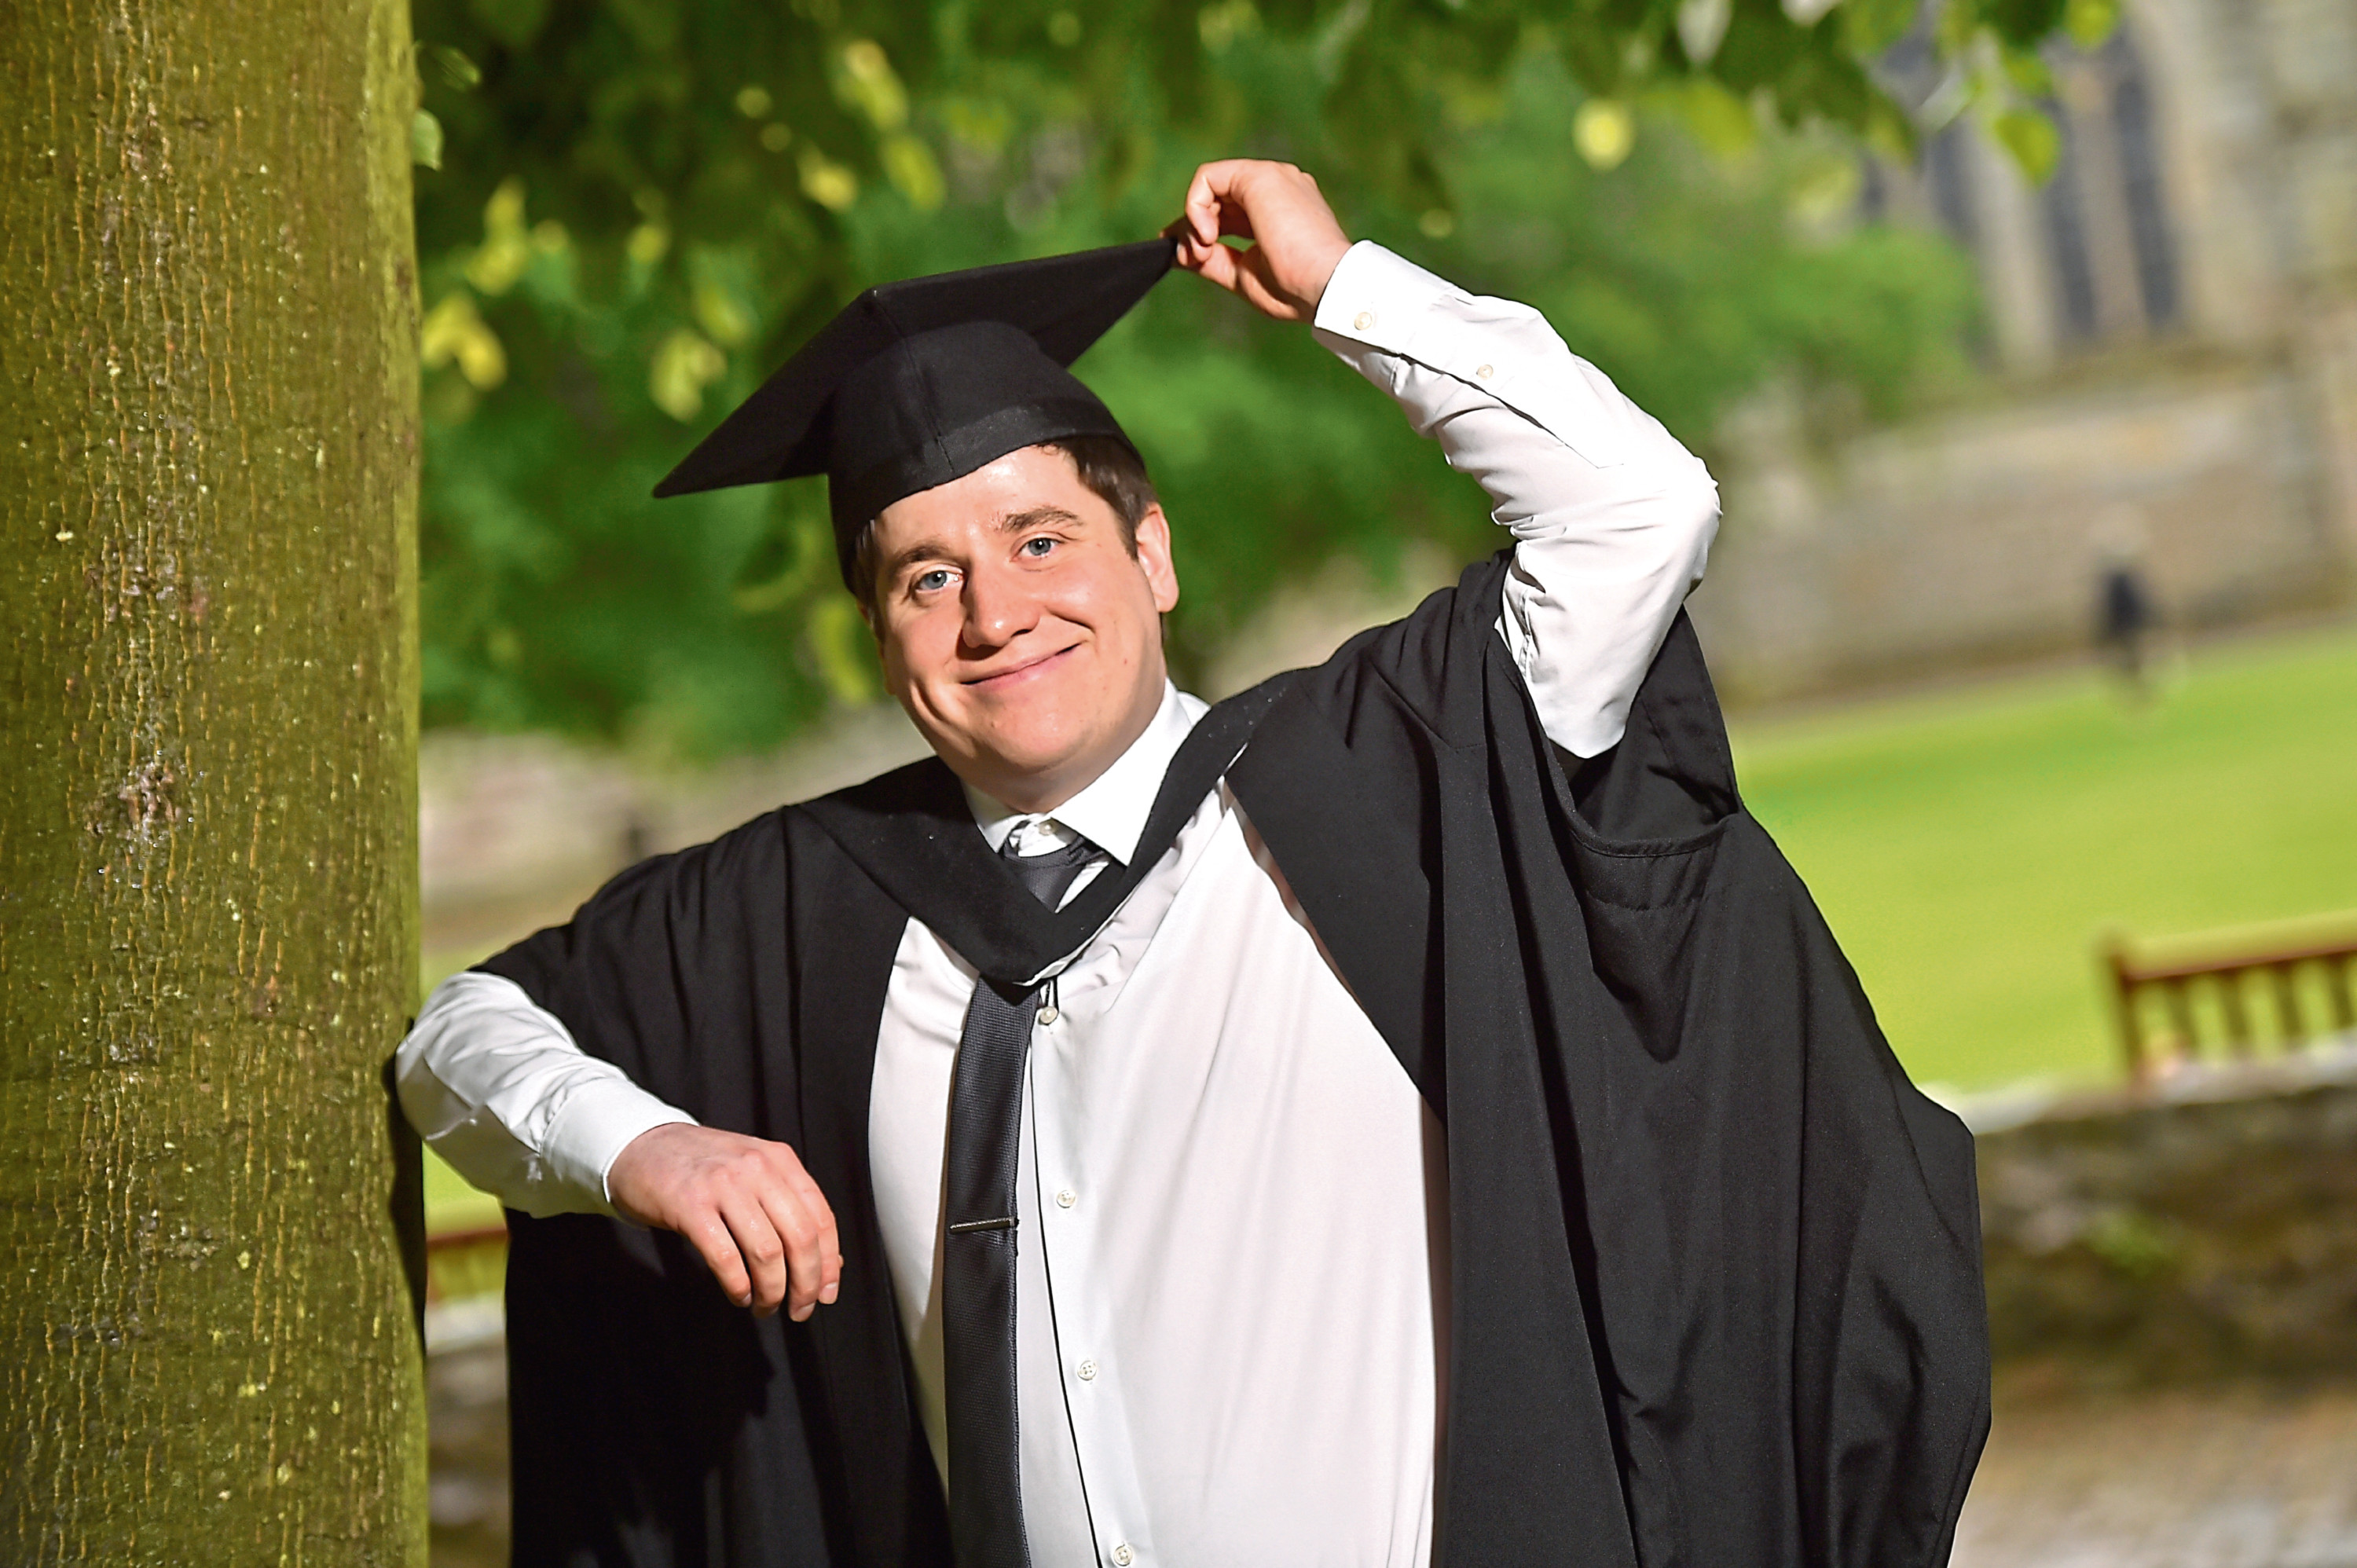 Graduate Ross Shepherd's next step is a master's degree at Glasgow University